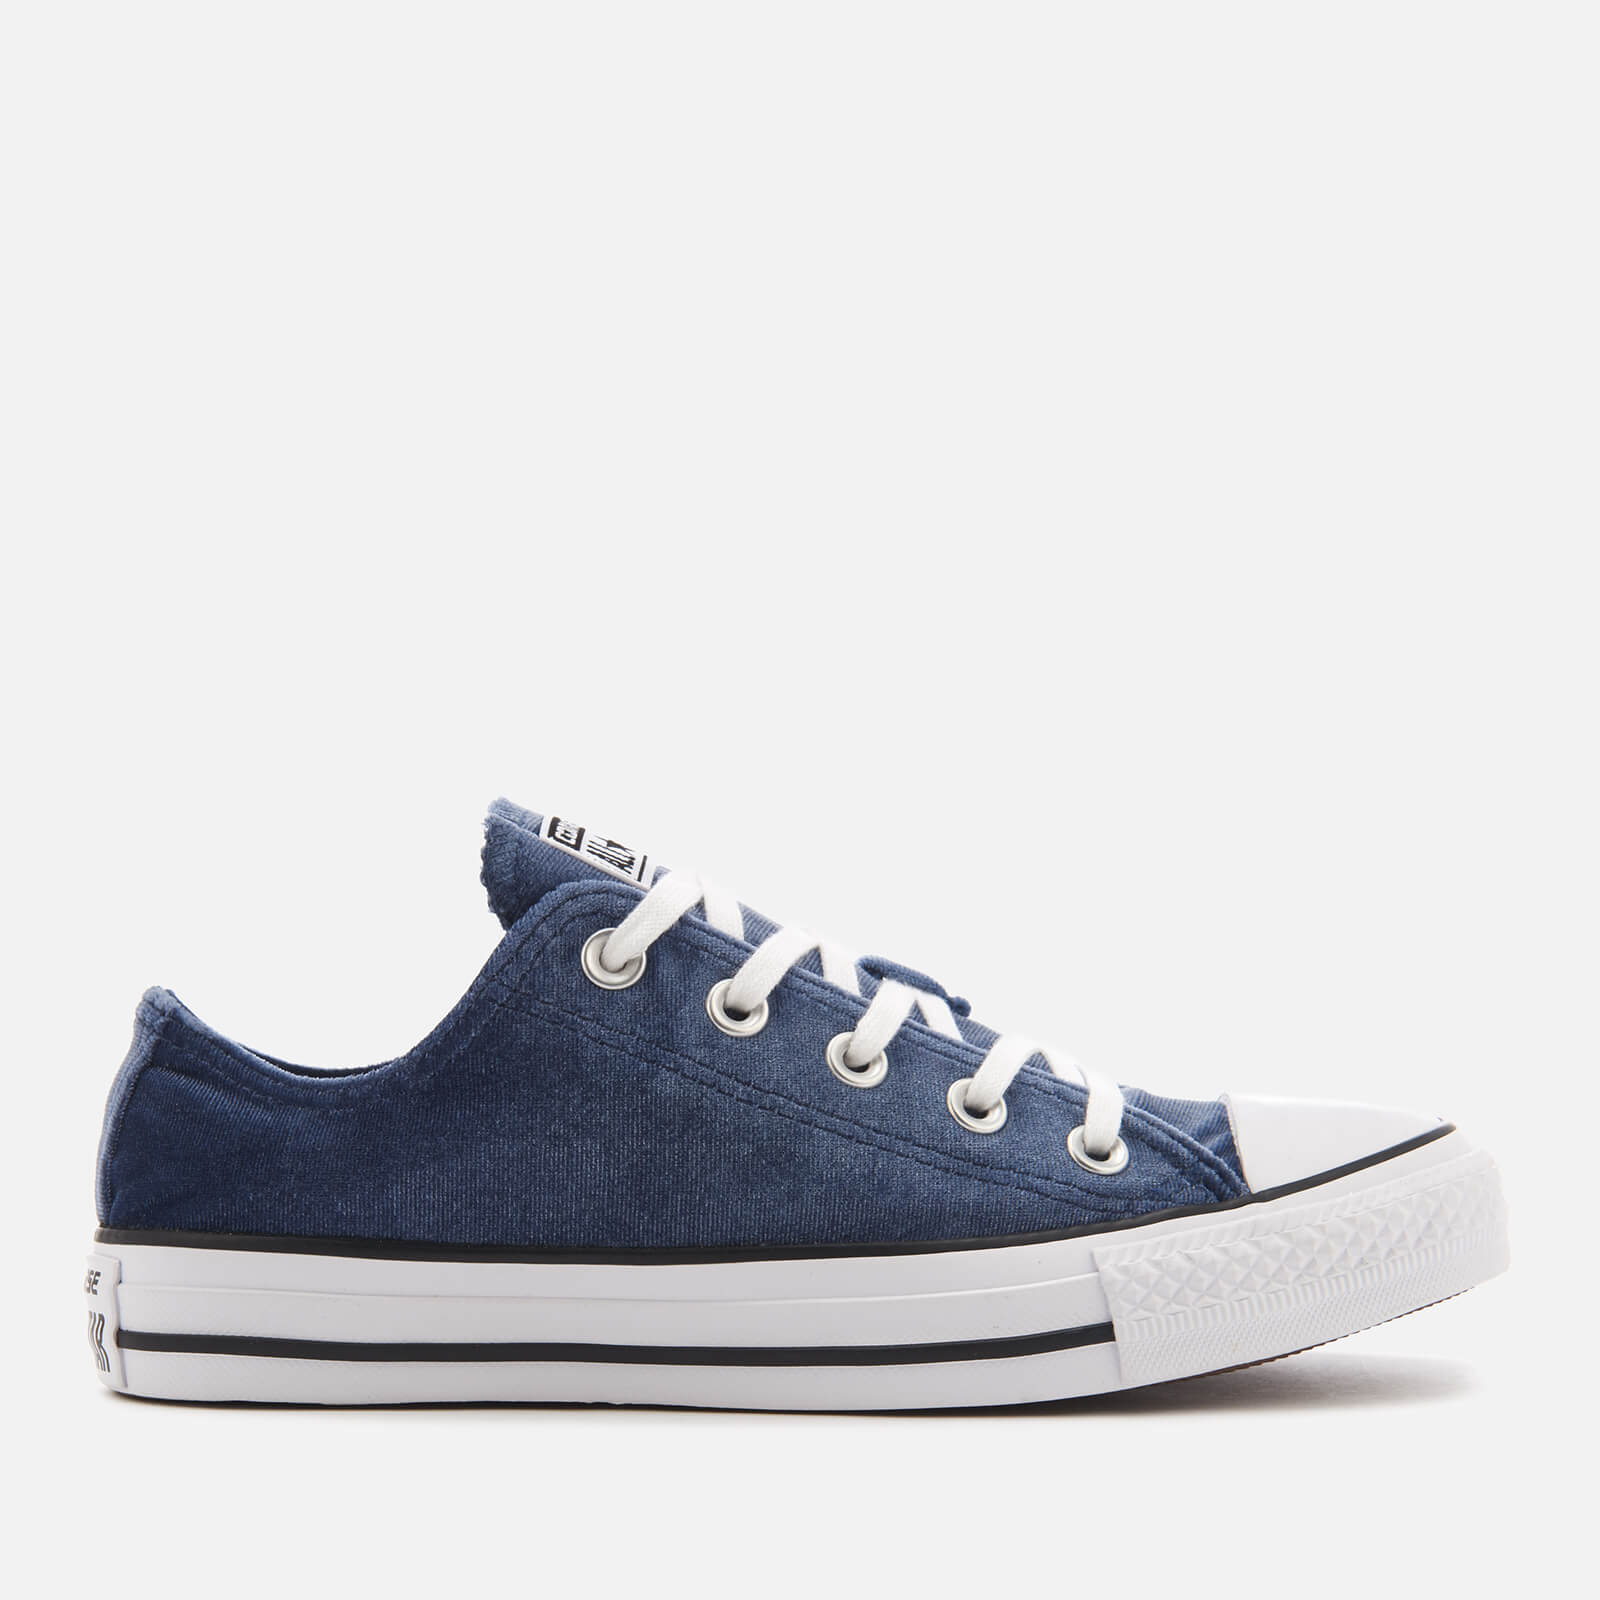 9762f44826d8 Converse Women s Chuck Taylor All Star Ox Trainers - Midnight Navy White White  Clothing